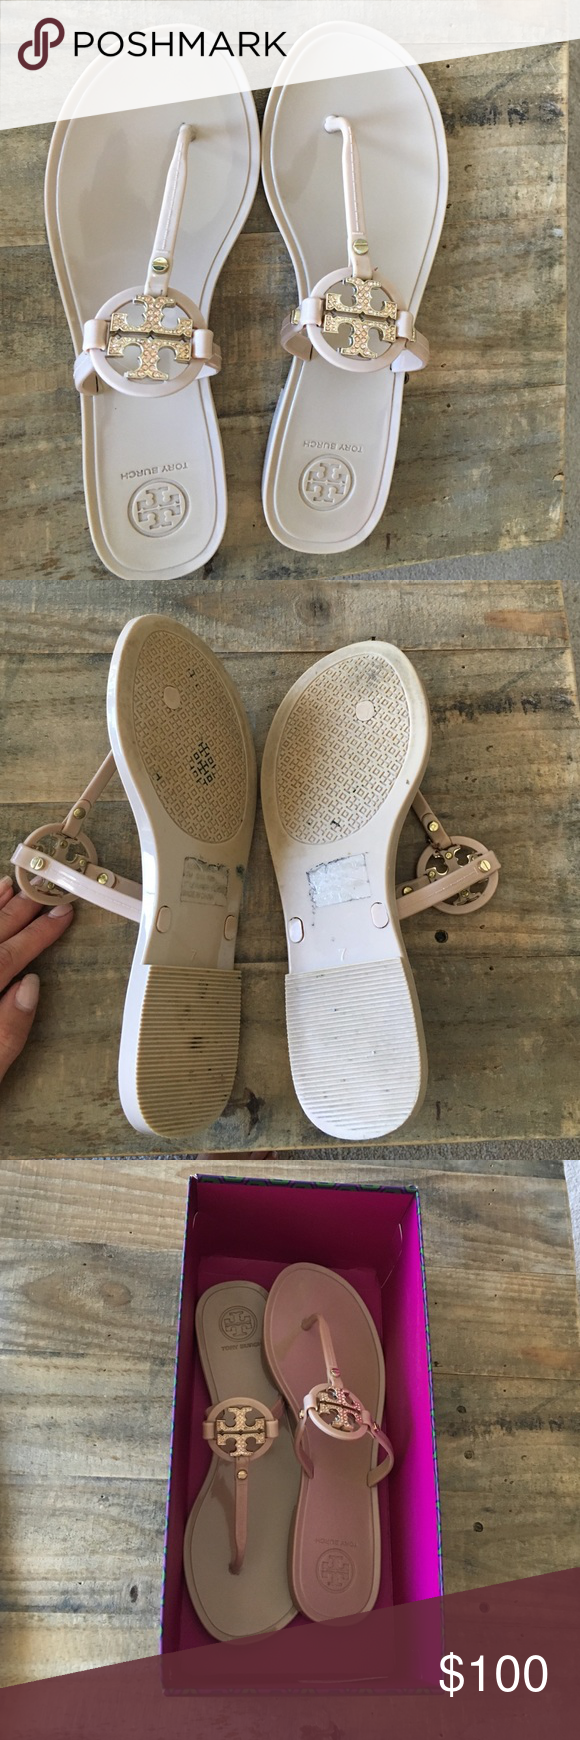 Tory Burch Mini Miller Sandal Size 7 EUC Tory Burch Sandal. Blush color with tan crystals on TH emblem. All crystals are intact and no scratches or wear on visible part of shoe. Light wear and tear on bottom as pictured! Tory Burch Shoes Sandals